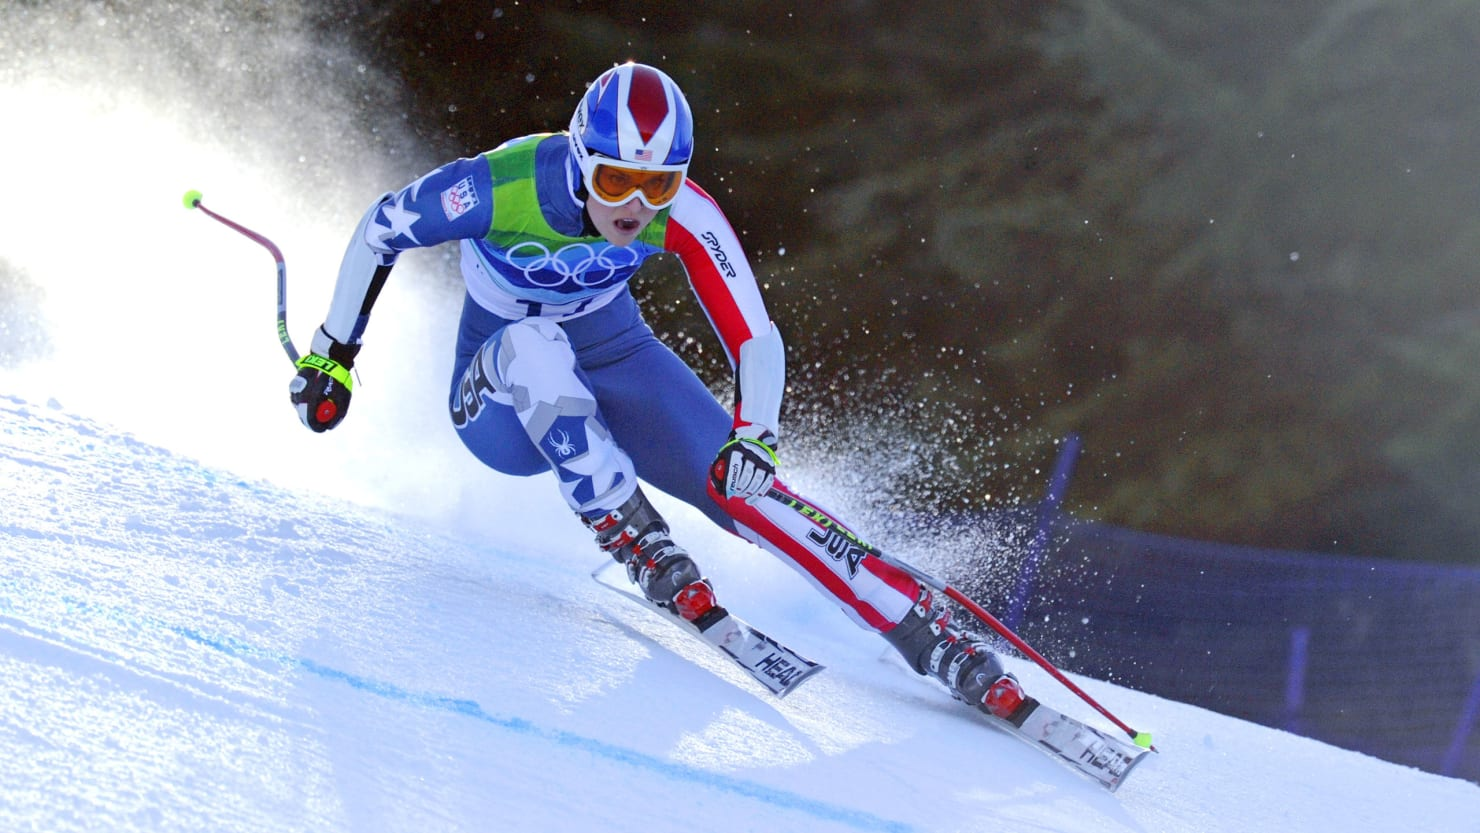 alpine skiing 2018 olympics full schedule how to watch. Black Bedroom Furniture Sets. Home Design Ideas